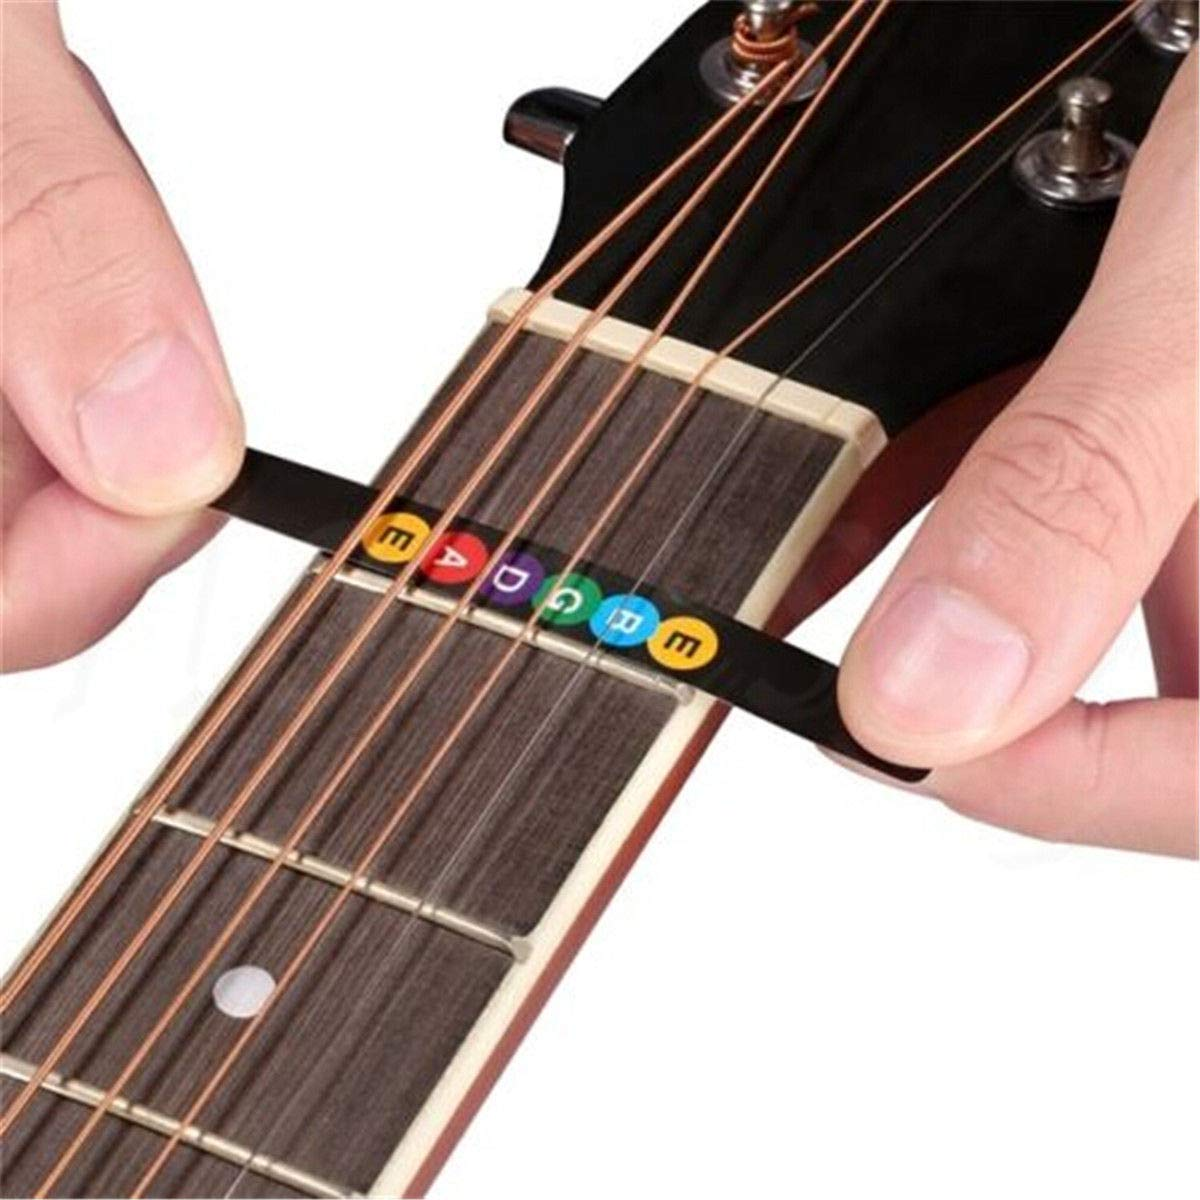 Amazon.com: Guitar Fretboard Note Chart Decals Fingerboard Fret Map Removable Color Coded Sticker: Musical Instruments